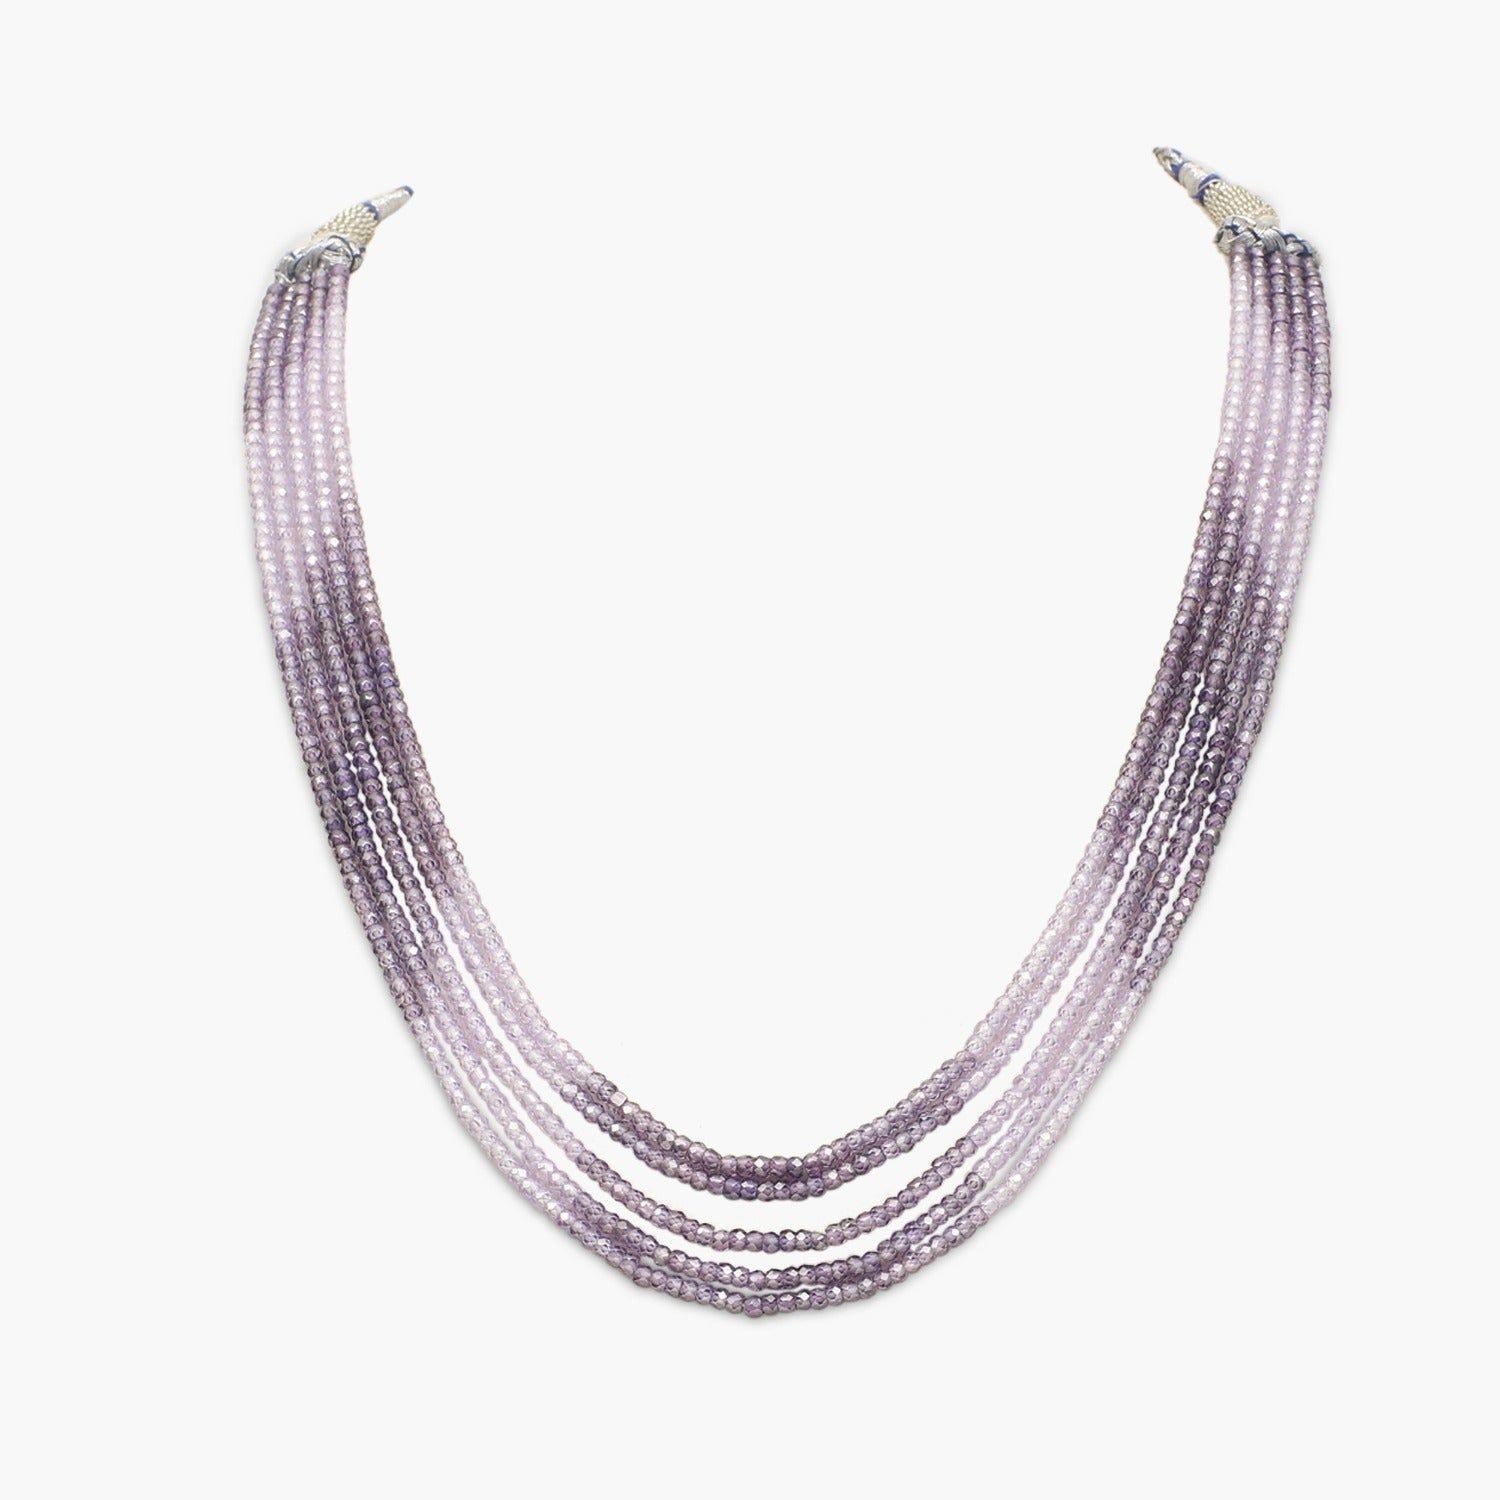 Lavender shaded Faceted Cubic Zirconia Beads Necklace